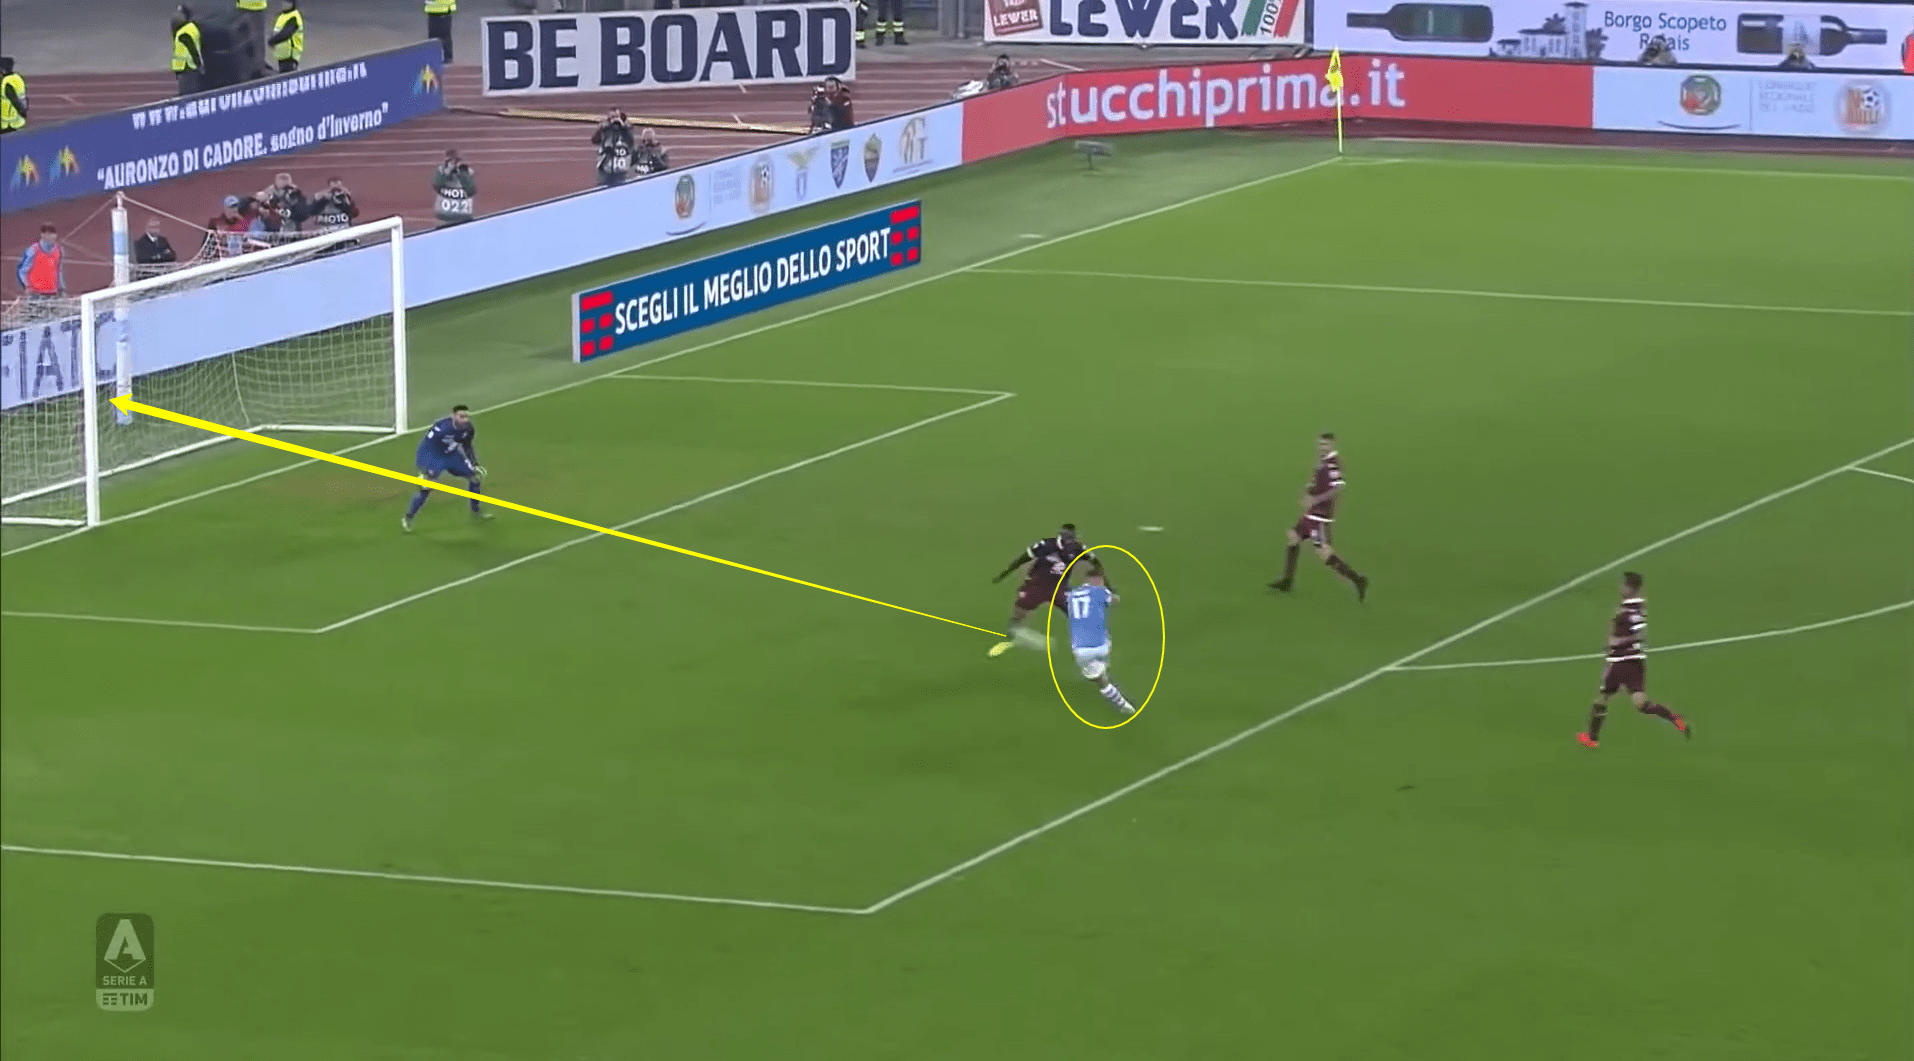 Serie A - Top 3 goal scorers 'part 1' - Ciro Immobile tactical analysis tactics